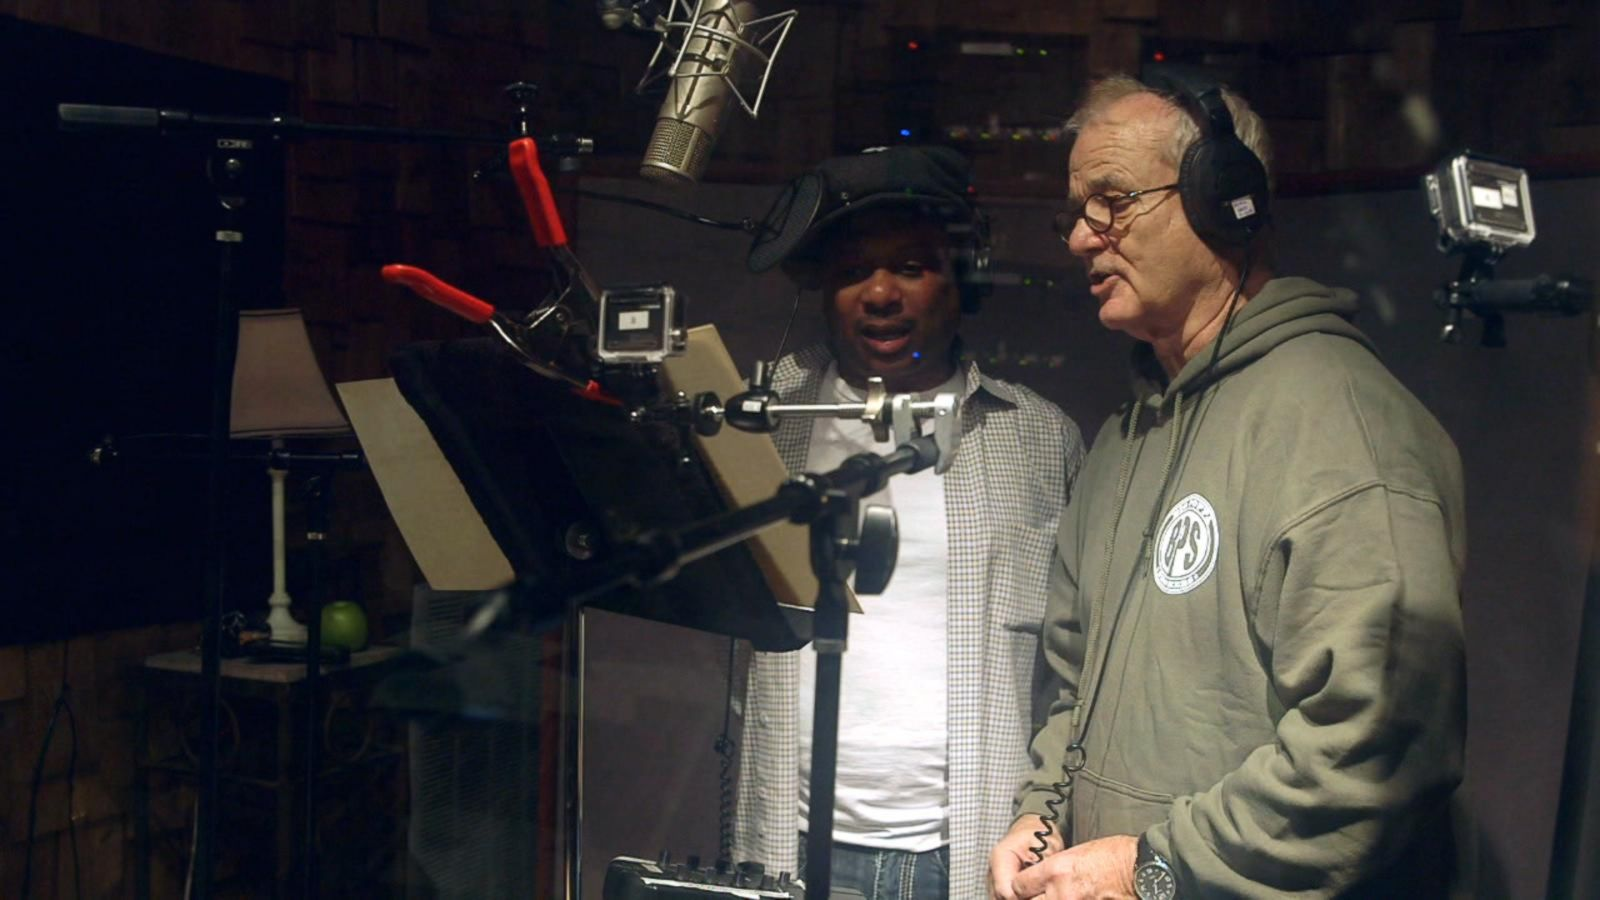 VIDEO: Bill Murray Sings as Baloo in 'The Jungle Book' Recording Studio